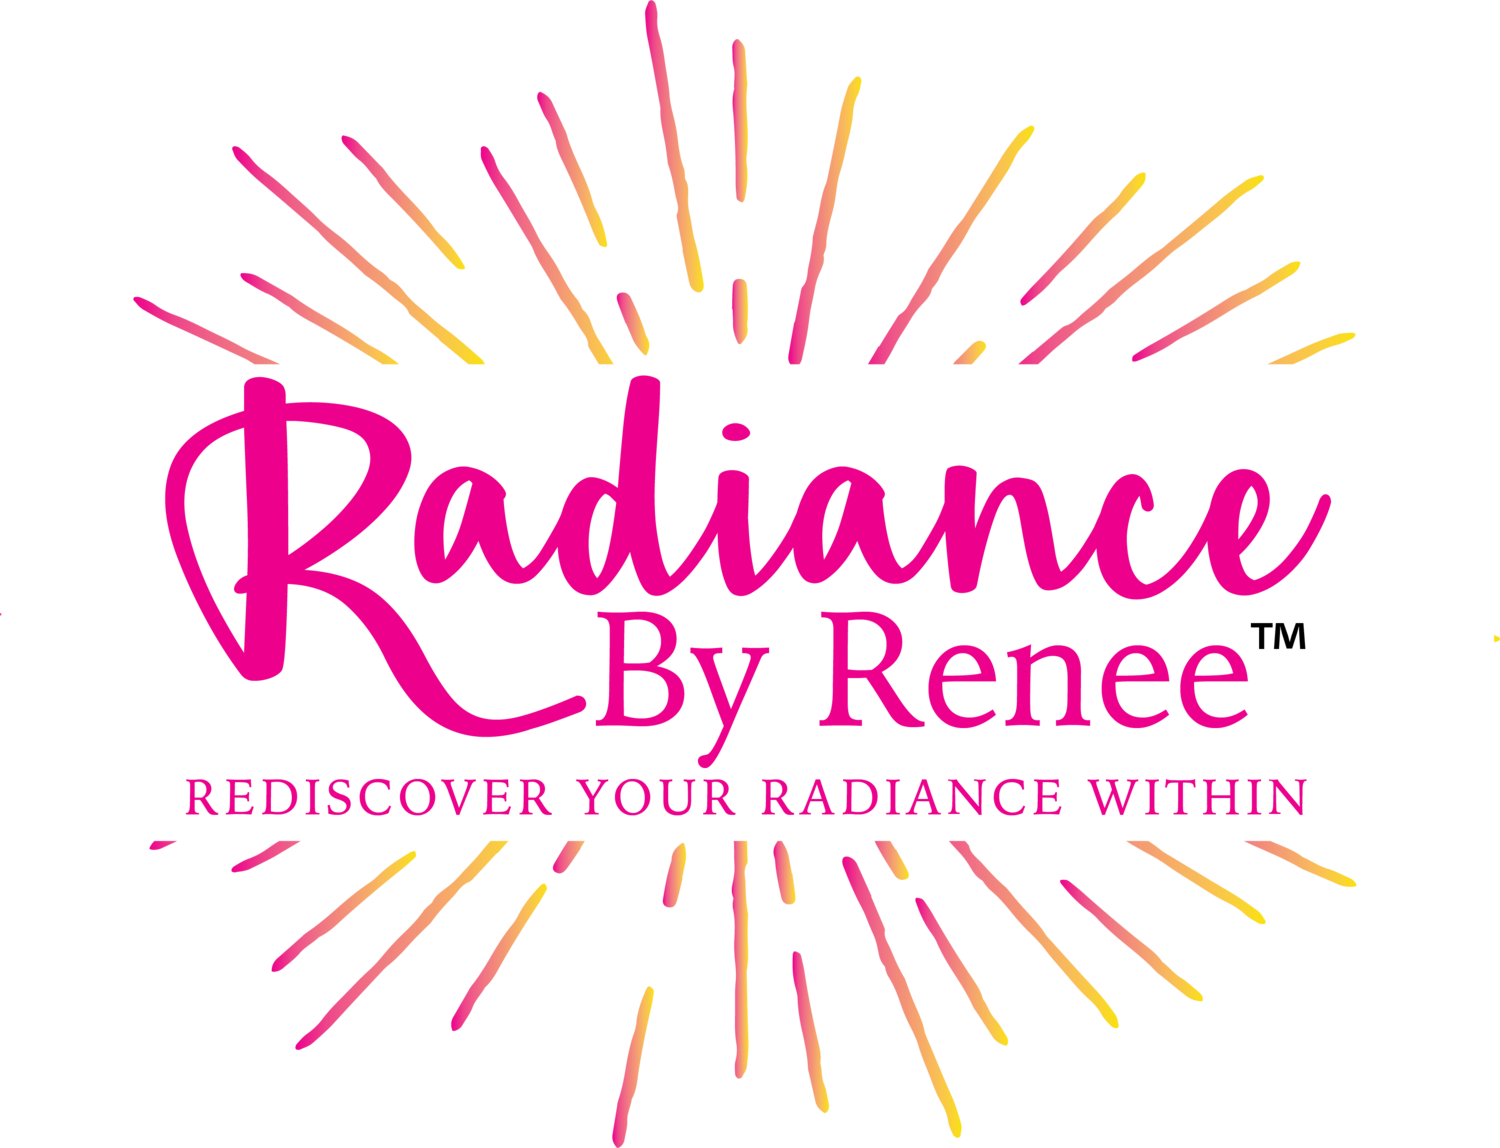 Radiance by Renee